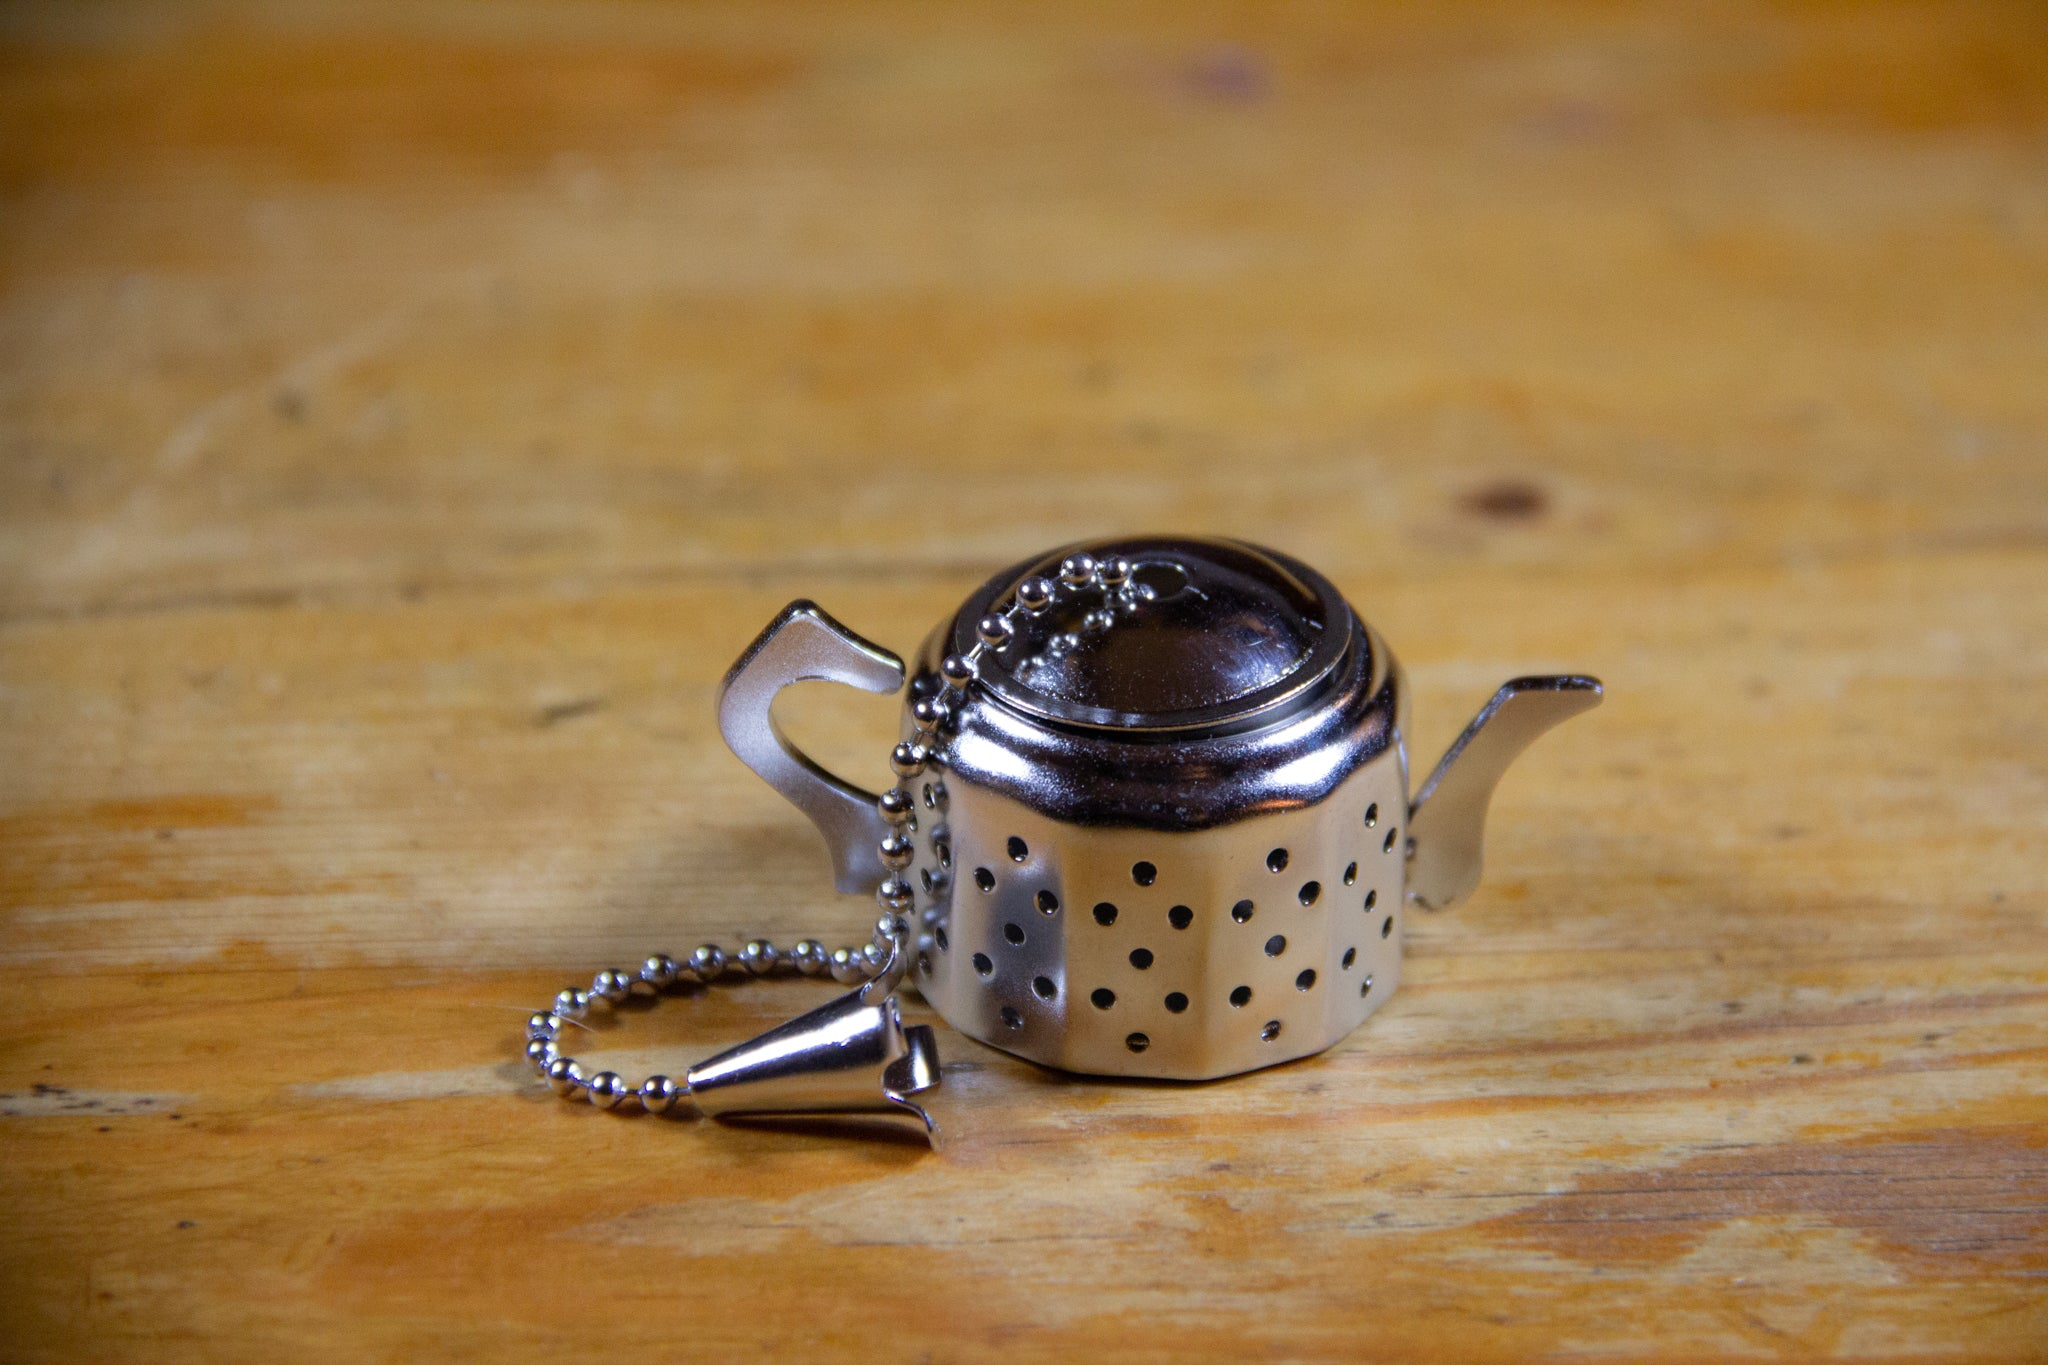 Teapot Shaped Strainer